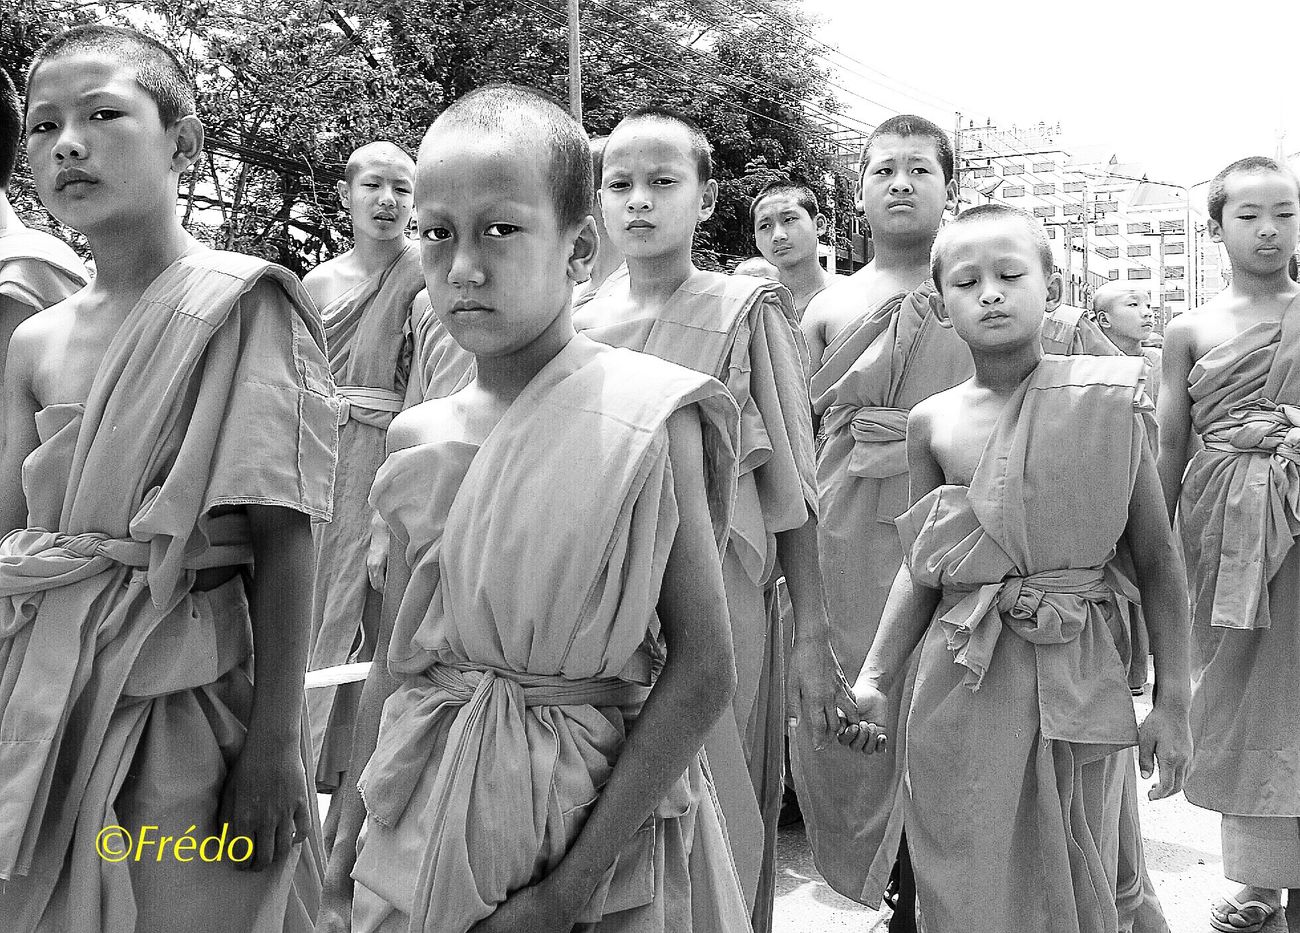 Enfants moines à Chiang Mai Child Outdoors Large Group Of People Boys Portrait People Monks Buddhism Buddhist Monks Streetphotography Real People Faces Of EyeEm Portrait Photography Street Photo Photo Of The Day Photooftheday Eyem Gallery Street Photos😄📷🏫⛪🚒🚐🚲⚠ Photography Eyeemphotography Faces Of The World Looking At Camera Childhood Street Blackandwhite